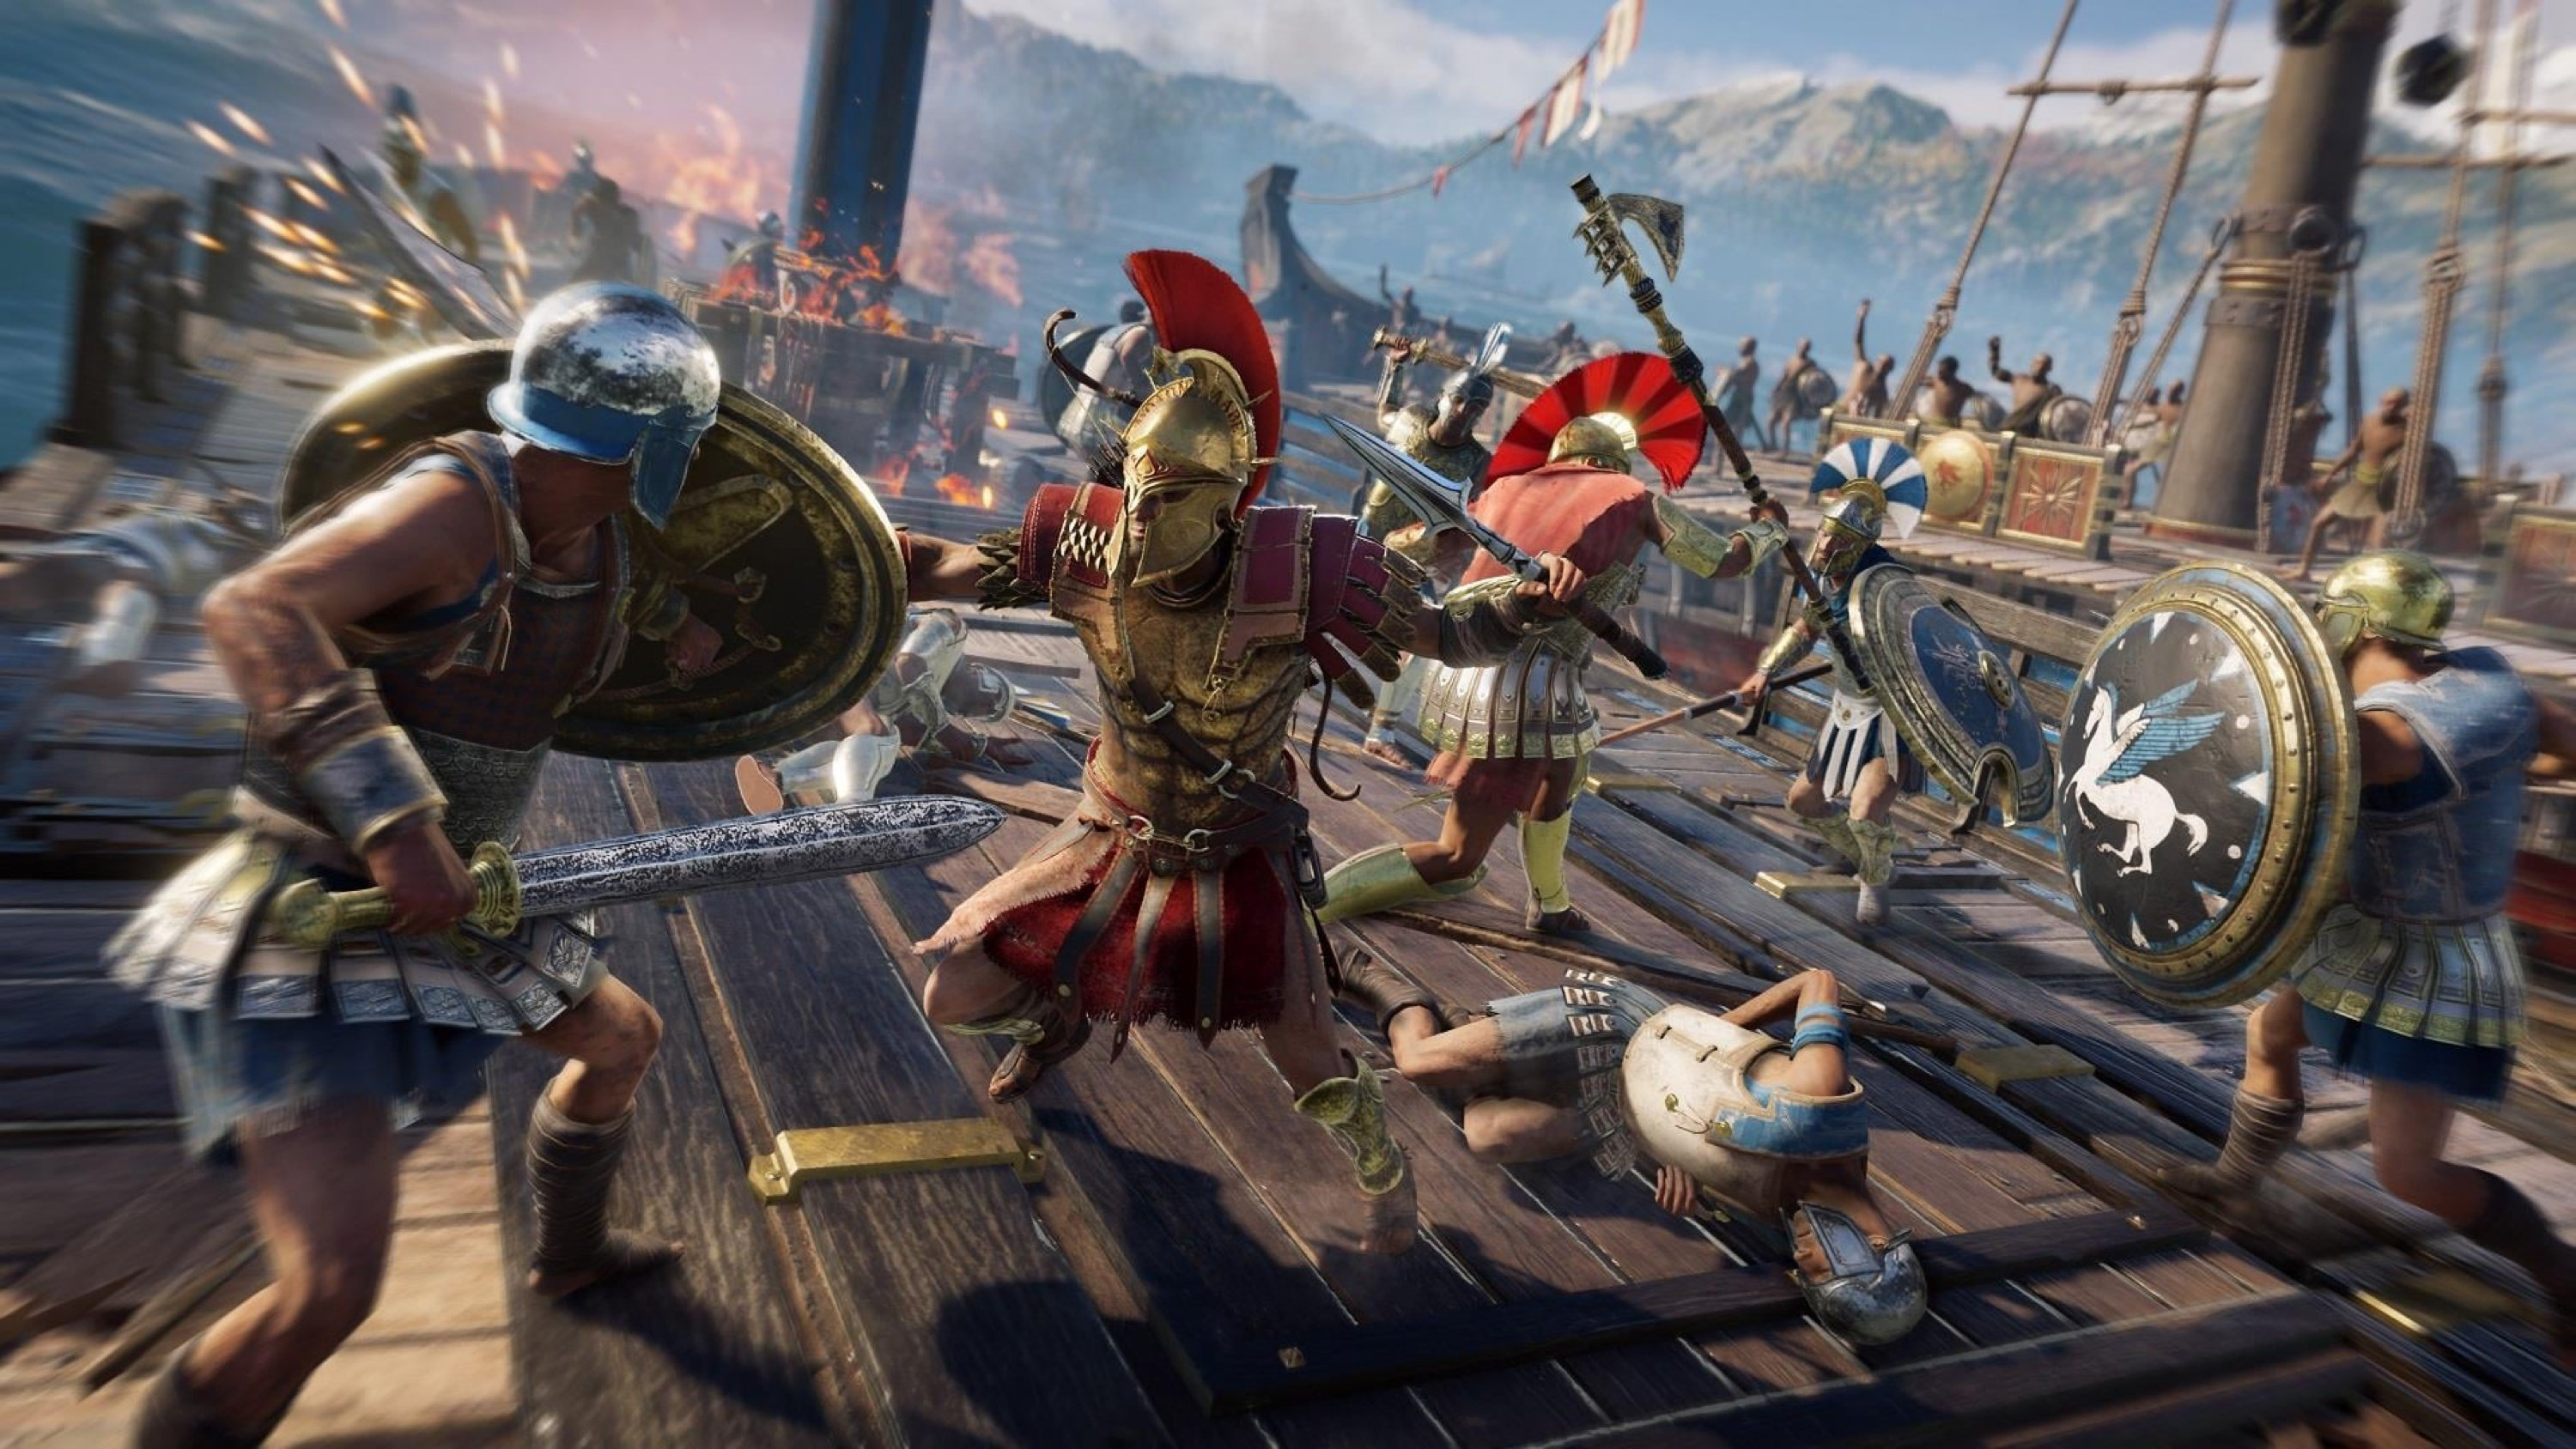 Assassin's Creed Odyssey is just one of several titles available for a discount on PlayStation's Days of Play sale.